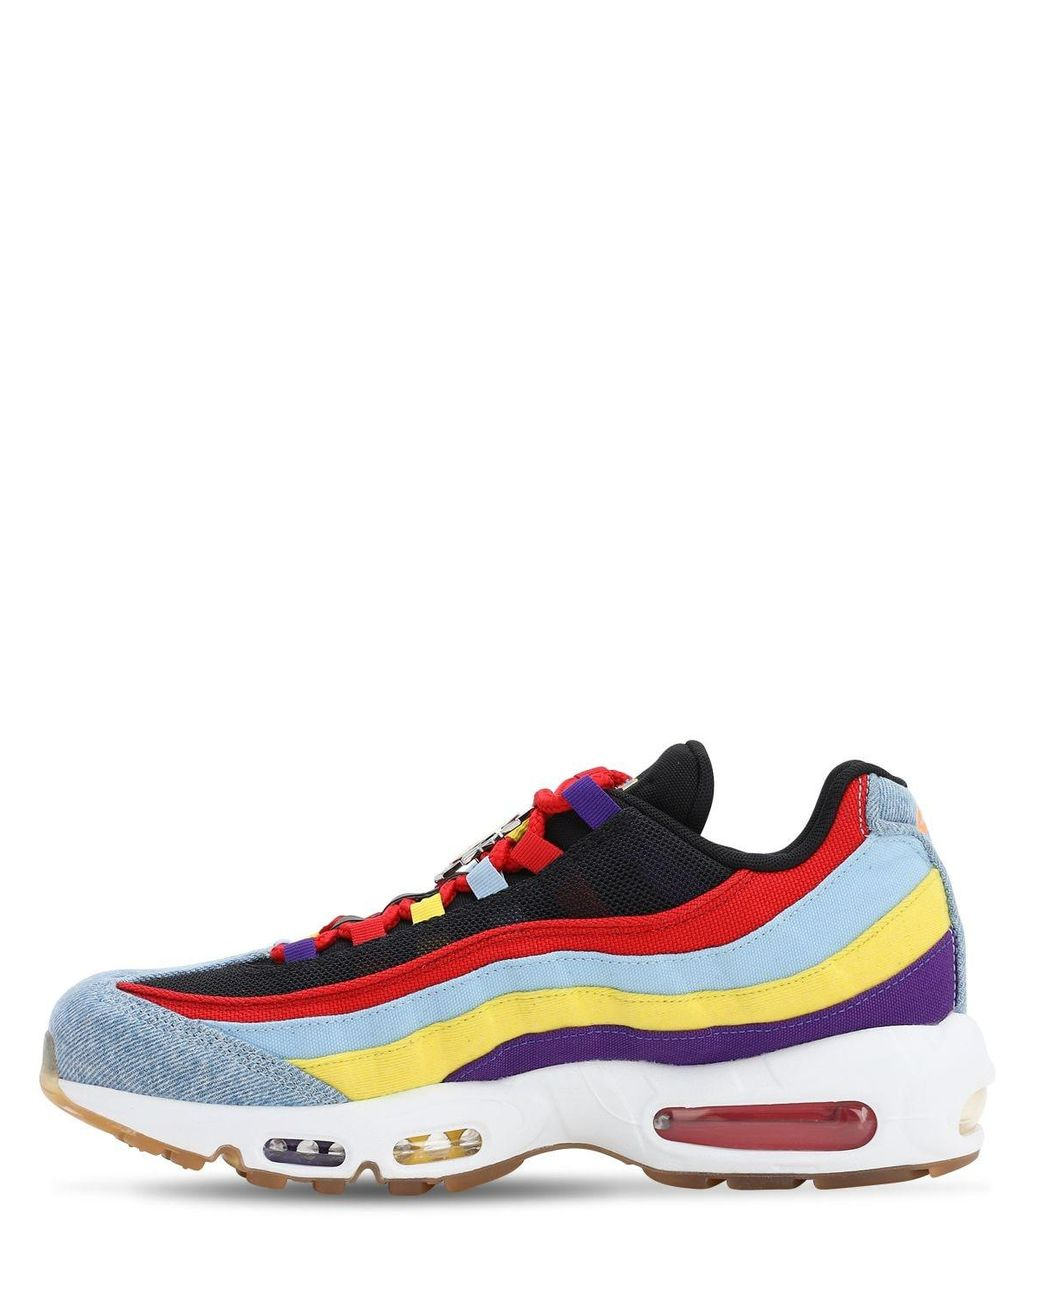 Nike Air Max 95 Sp Shoe in Blue for Men - Save 34% - Lyst